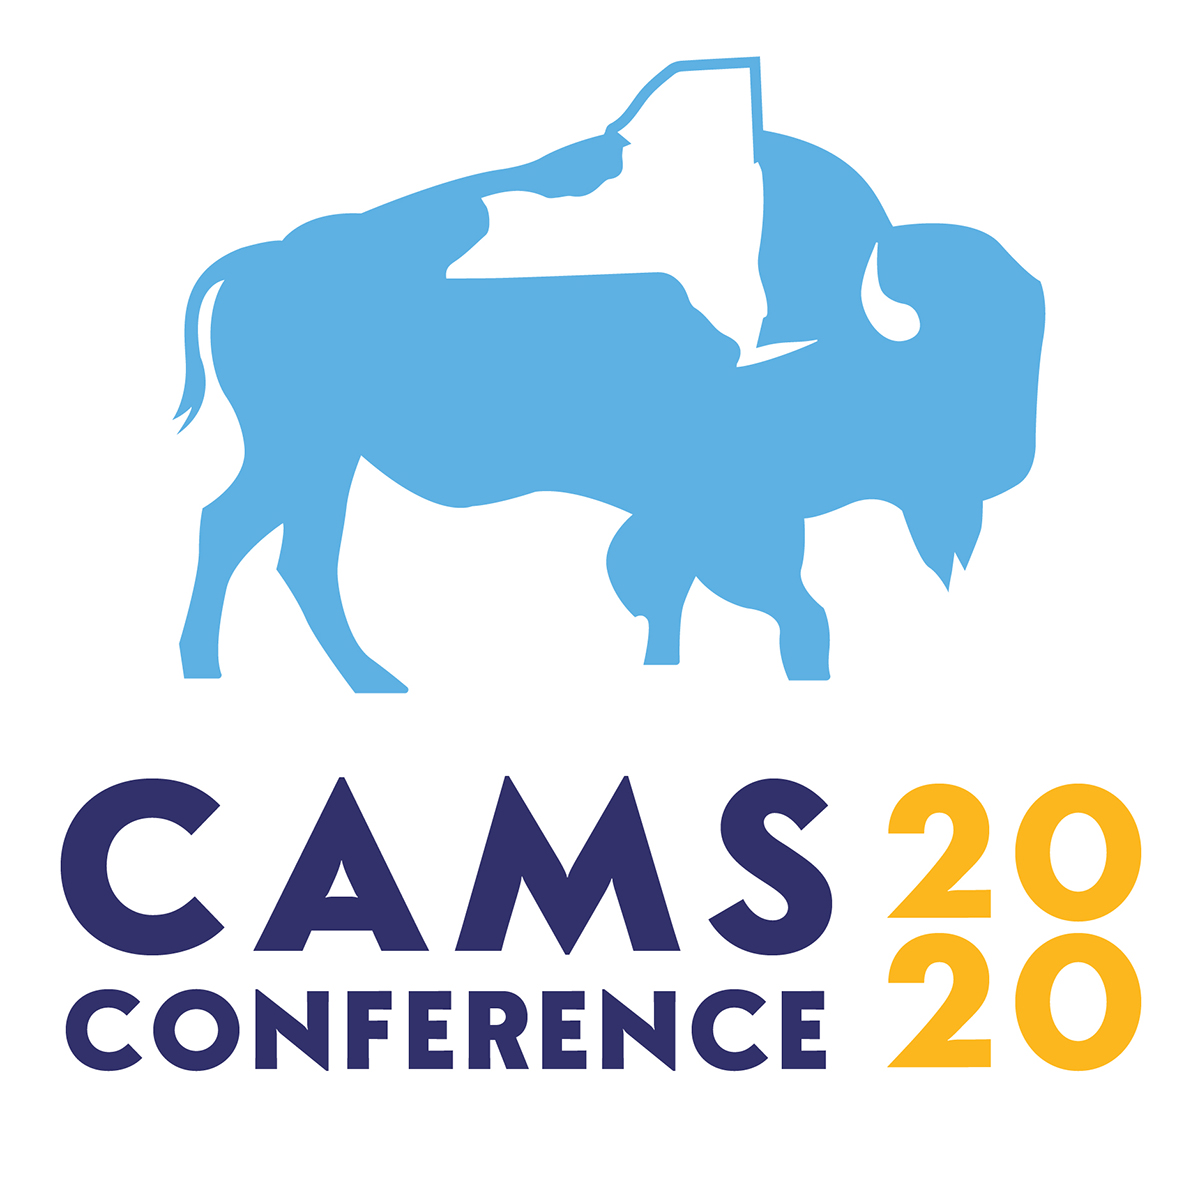 CAMS Conference 2020